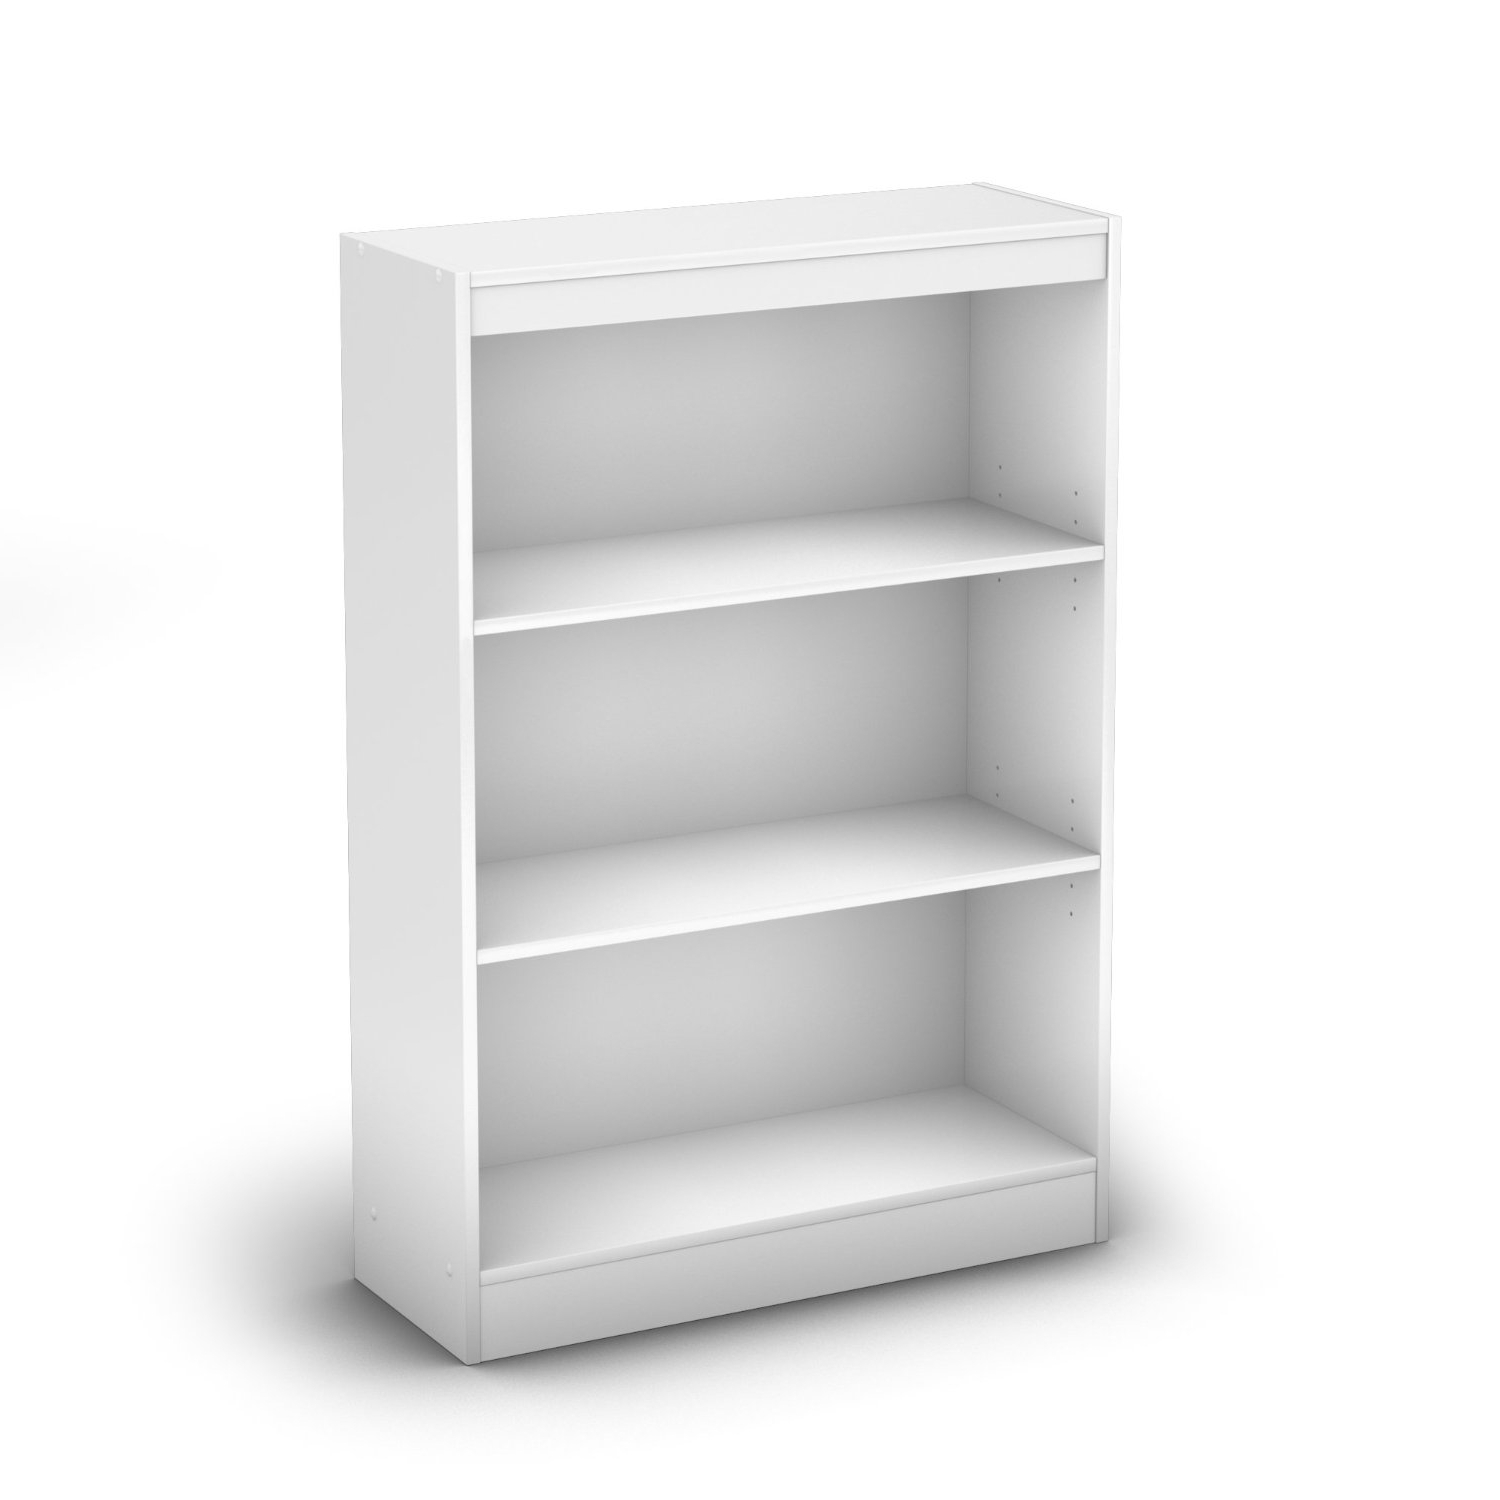 Best And Newest Small White Bookcases Within Top 30 Collection Of White Bookcases And Bookshelfs (View 2 of 15)